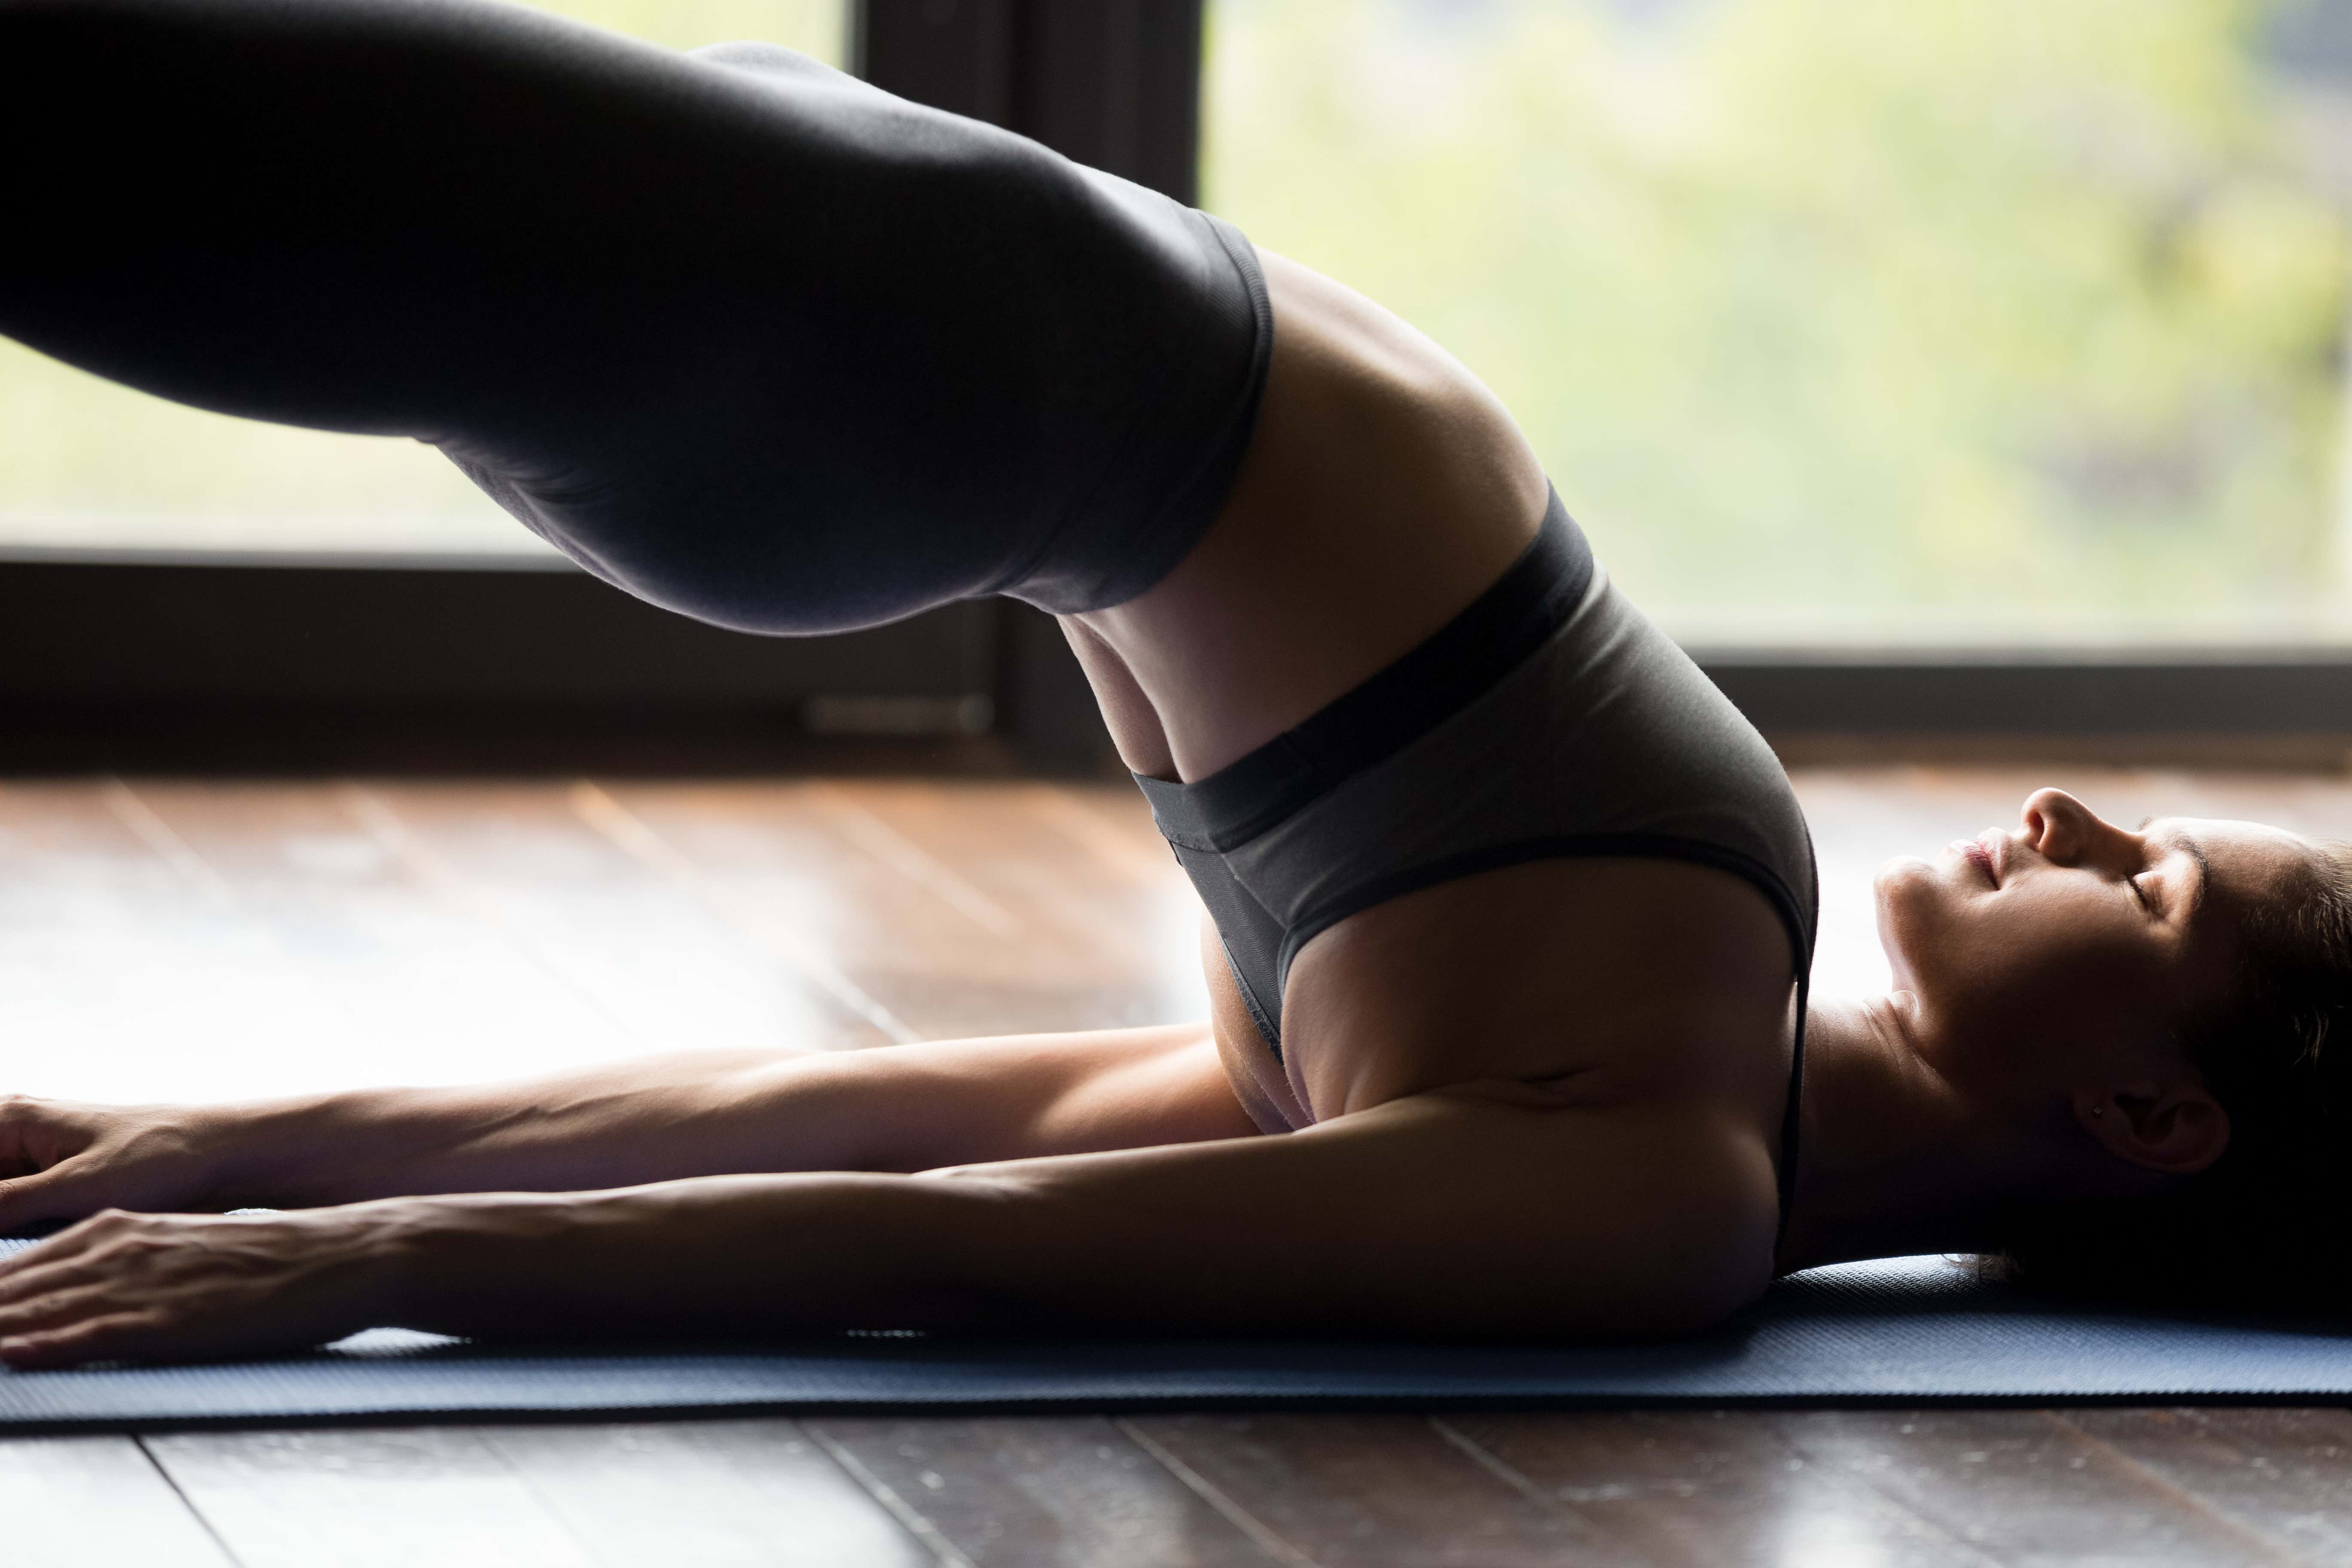 Young sporty woman practicing fitness or yoga, doing dvi pada pithasana exercise, Glute Bridge pose, working out wearing sportswear grey pants and top, indoor, body close up view, yoga studio concept